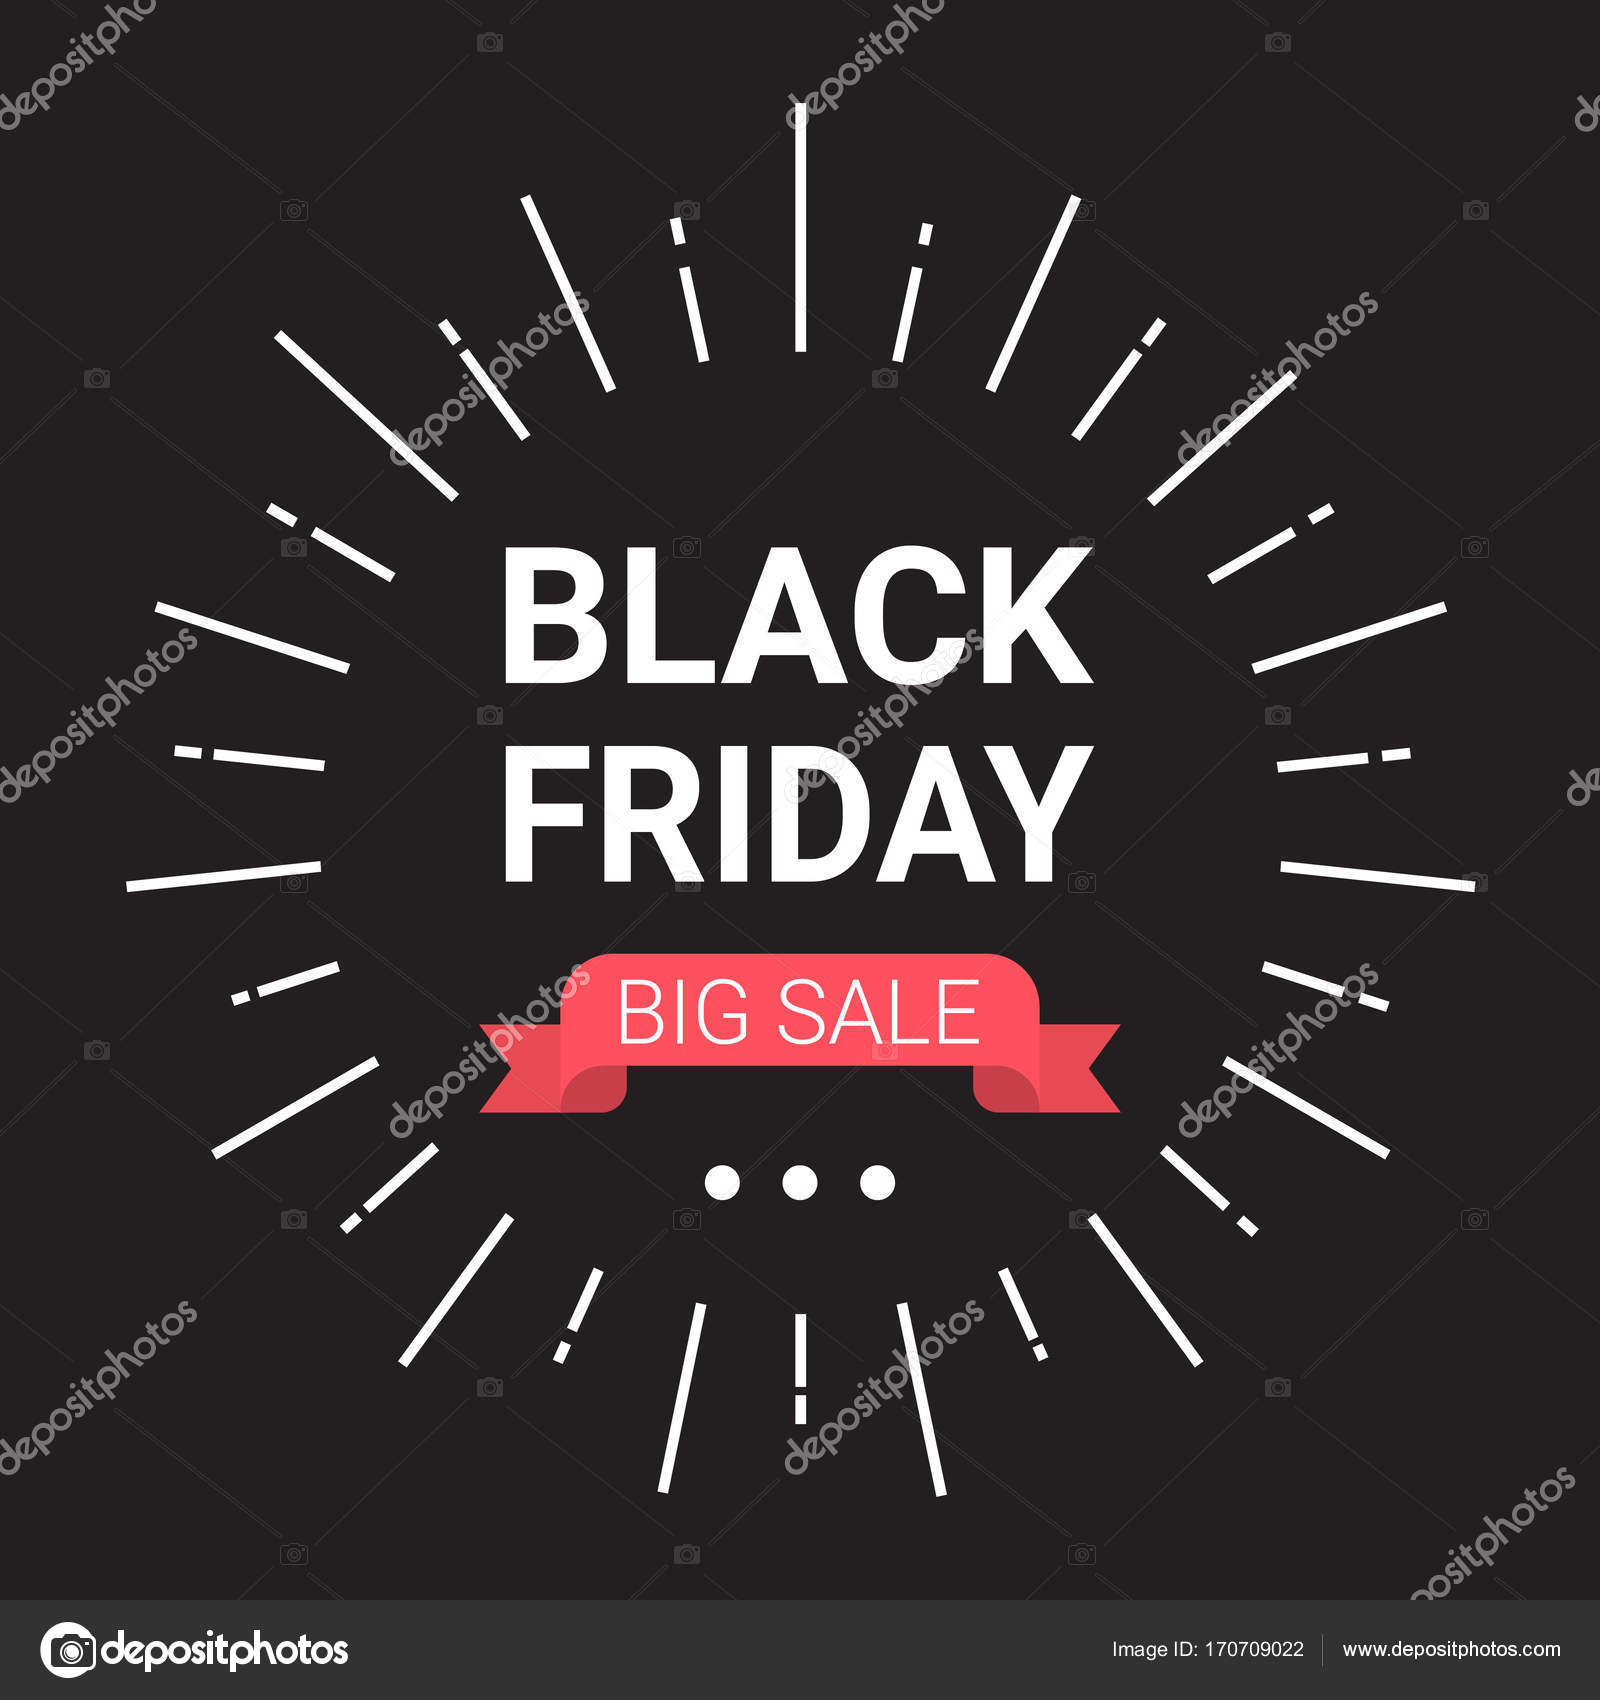 Black Friday Rabatt Black Friday Big Sale Banner Urlaub Rabatt Designkonzept